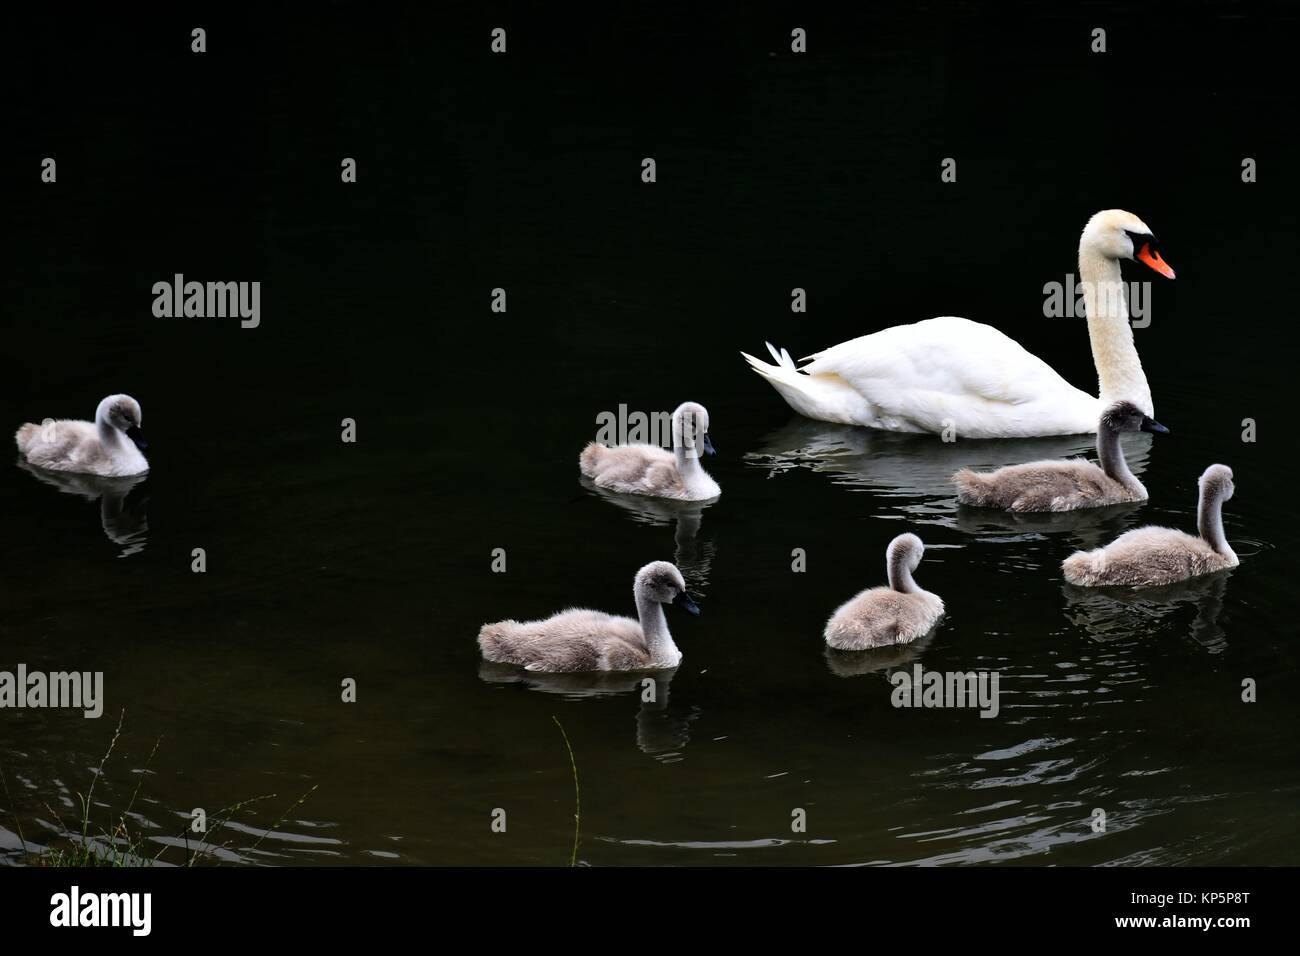 Swan Swimming With Cygnets, Stanway House, Gloucestershire, England. Stock Photo